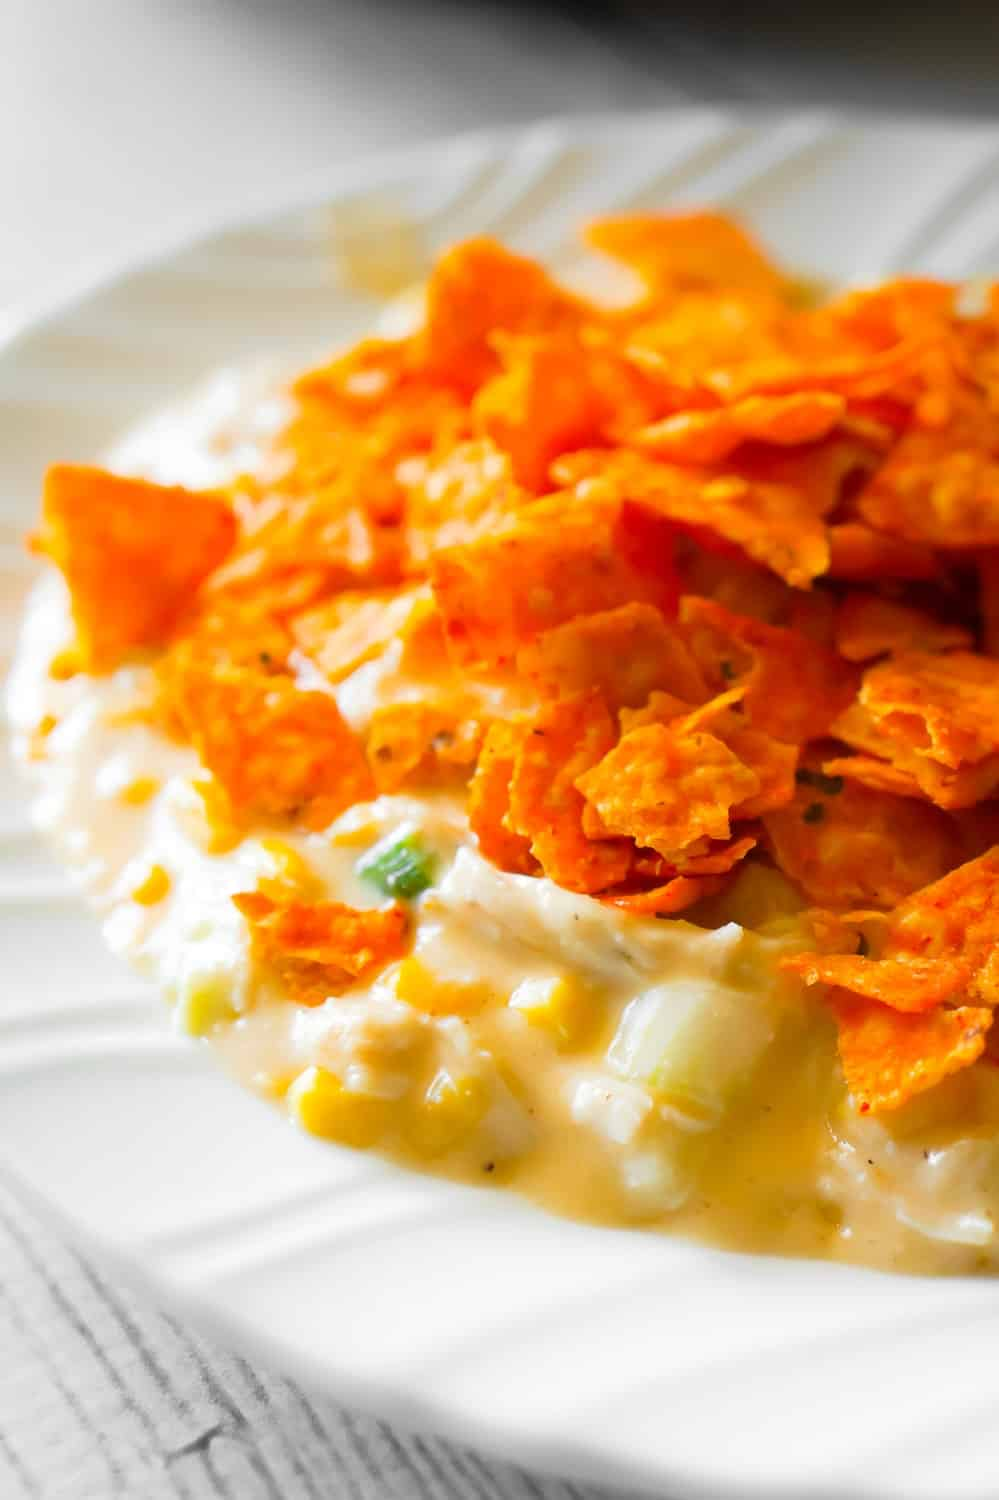 Instant Pot Doritos Chicken Casserole is an easy chicken dinner recipe the whole family will love. This creamy chicken casserole is loaded with corn, green onions, cream cheese, mozzarella and cheddar cheese.